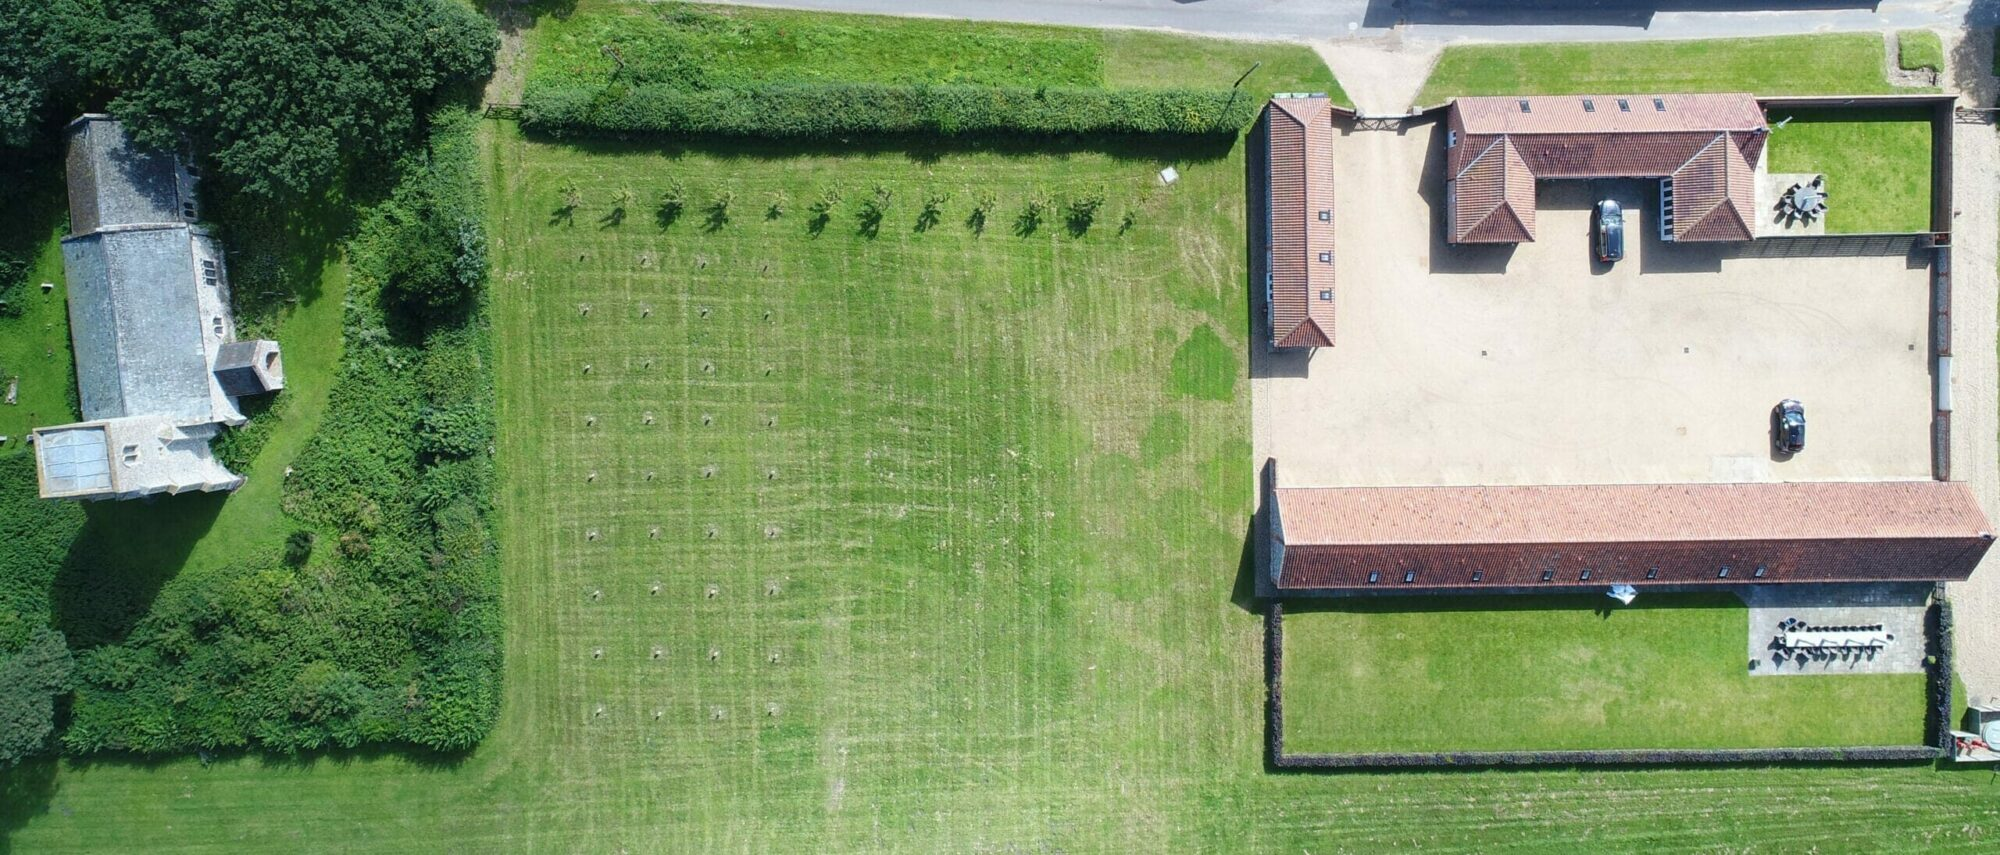 Brazenhall Barns - aerial scaled slider image